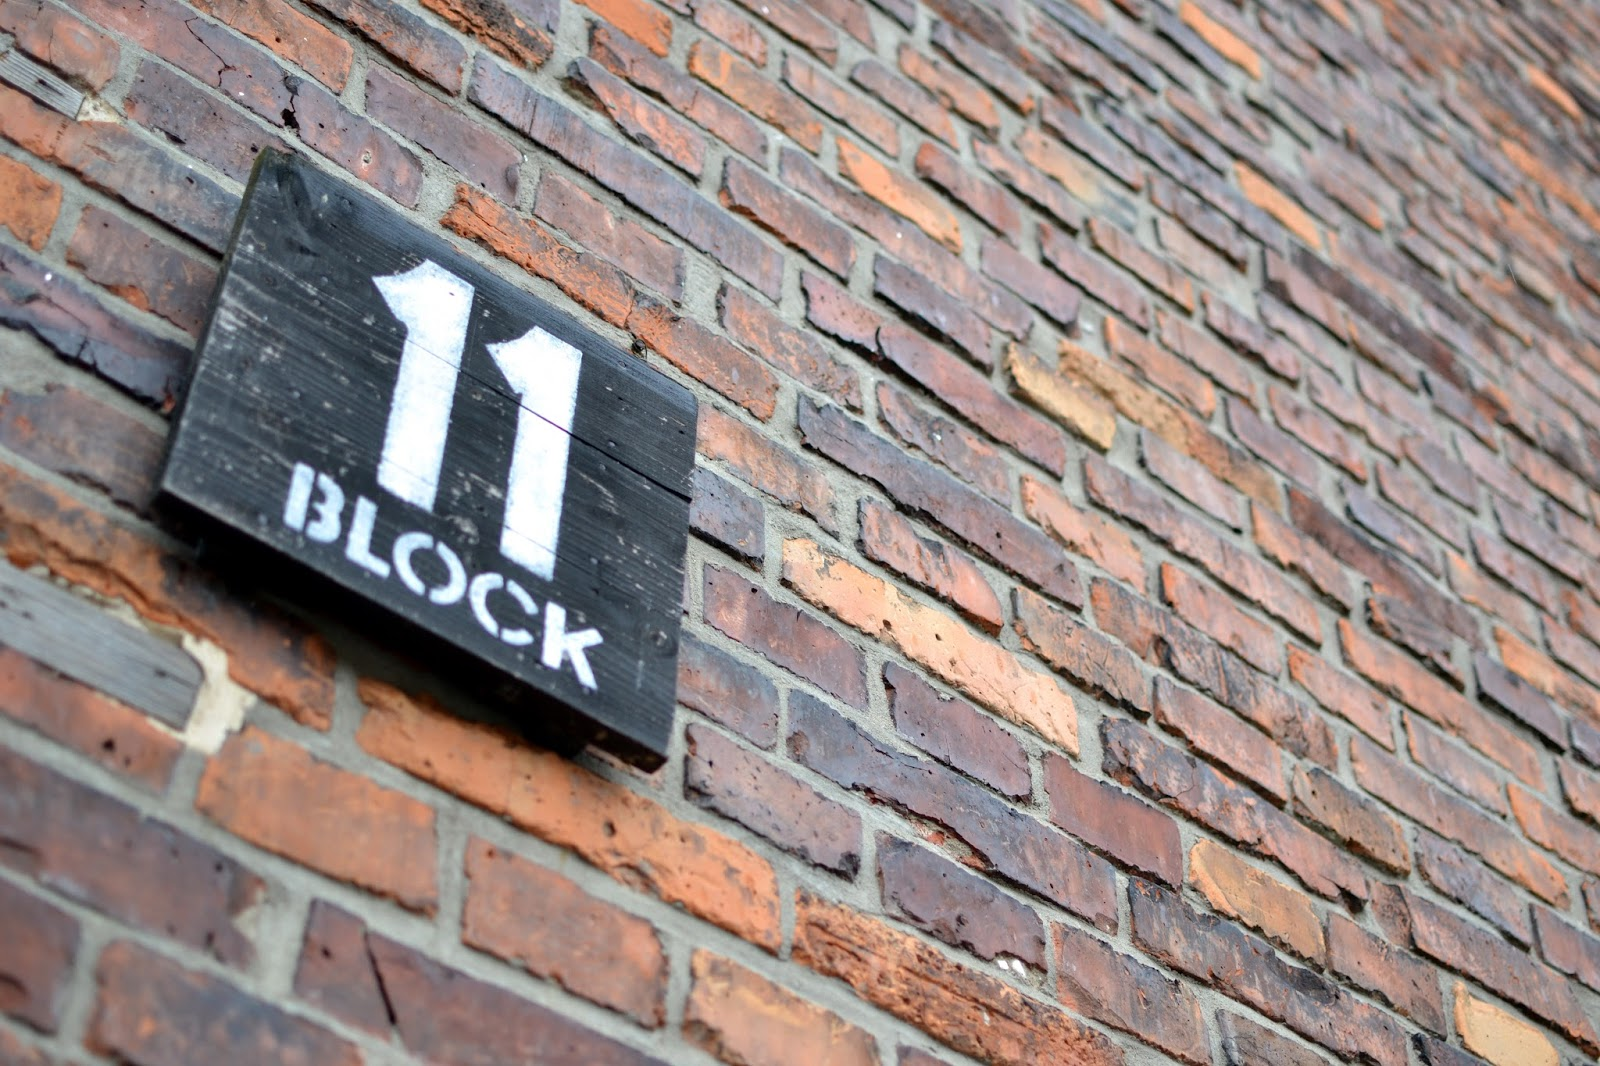 Block 11, Auschwitz, Birkenau, concentration camp, poland, nazi, death, death camp, train tracks, death gate, black and white, world war 2, ww2, hilter, germany, How to get to Auschwitz, Auschwitz hair, gas chamber, history, reflections on Auschwitz, experiences, travel, traveling, europe, bus to Auschwitz, train to Auschwitz, Auschwitz tours, Auschwitz guides, Auschwitz reports, photography, Halt Stouj!, barbed wire, fences, Auschwitz swimming pool, Auschwitz beauty, Arbeit macht frei, work makes you free,